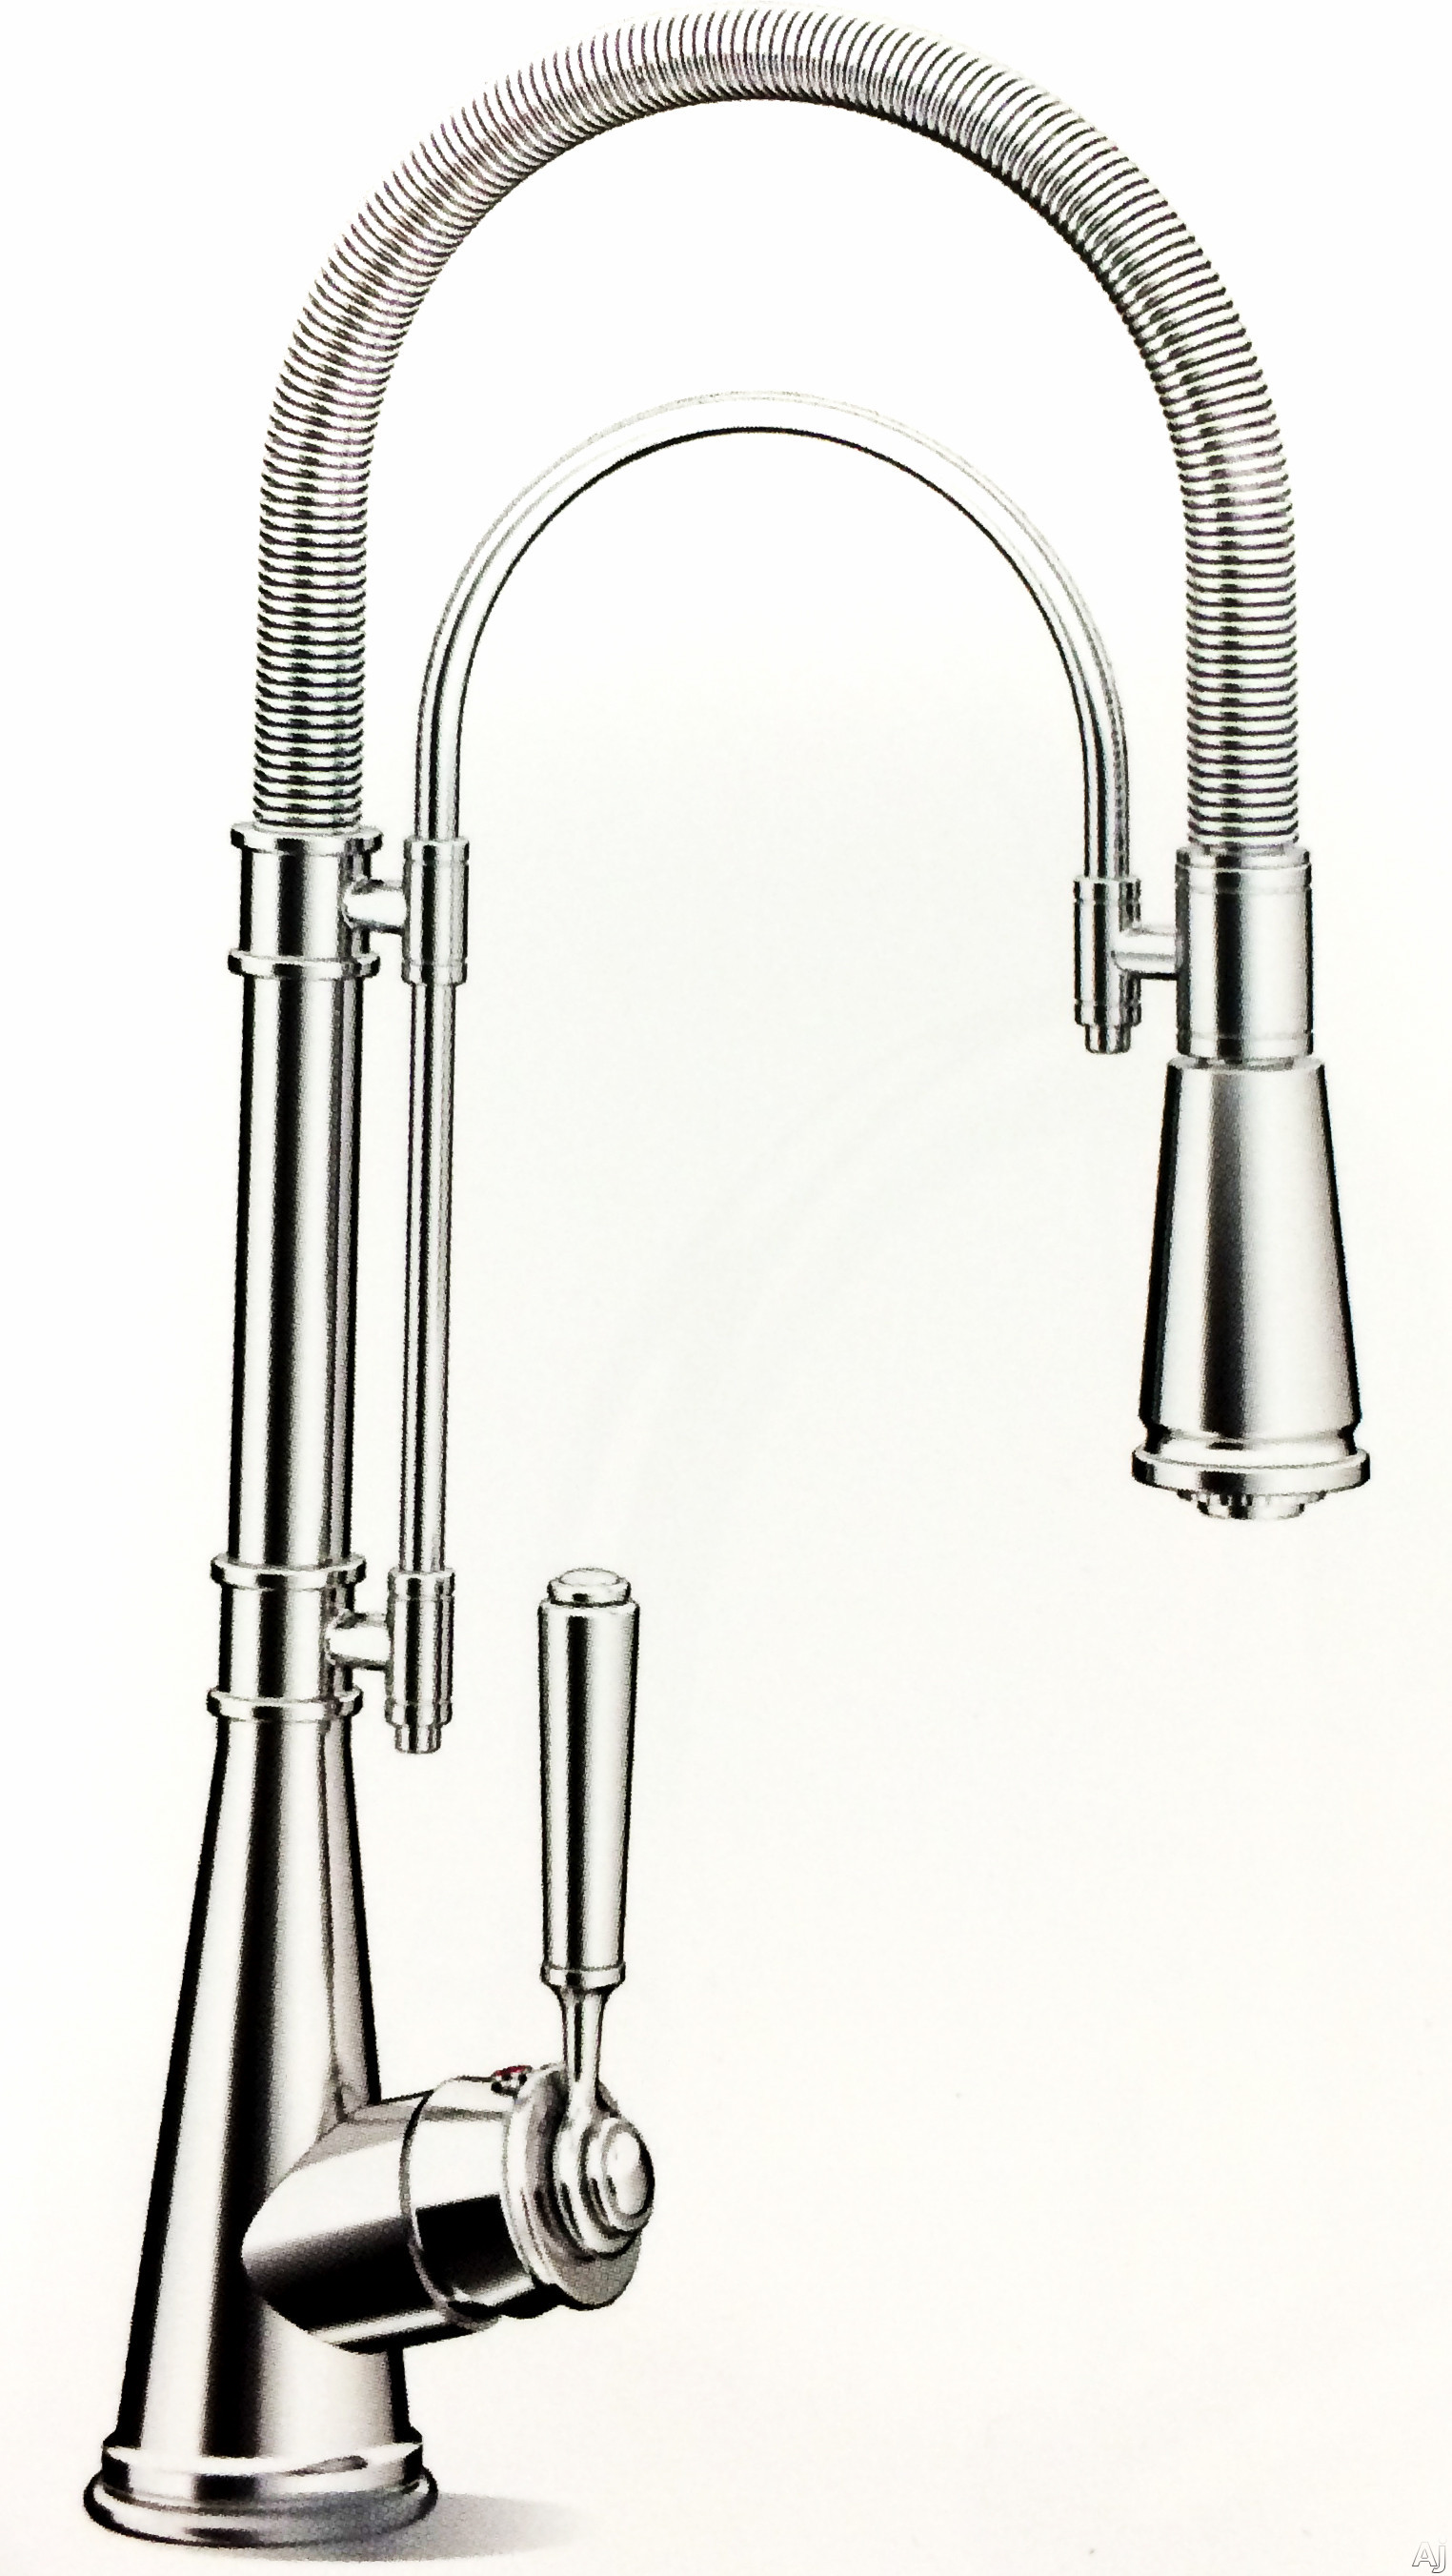 SCHOCK Acheron Series 526120CHR Single Lever Spiral Spring Kitchen Faucet with 150 ¦ Spout Swivel Latched or Flexible Functionality Water Saving Design Quarter Turn Ceramic Valves and Chrome Finish